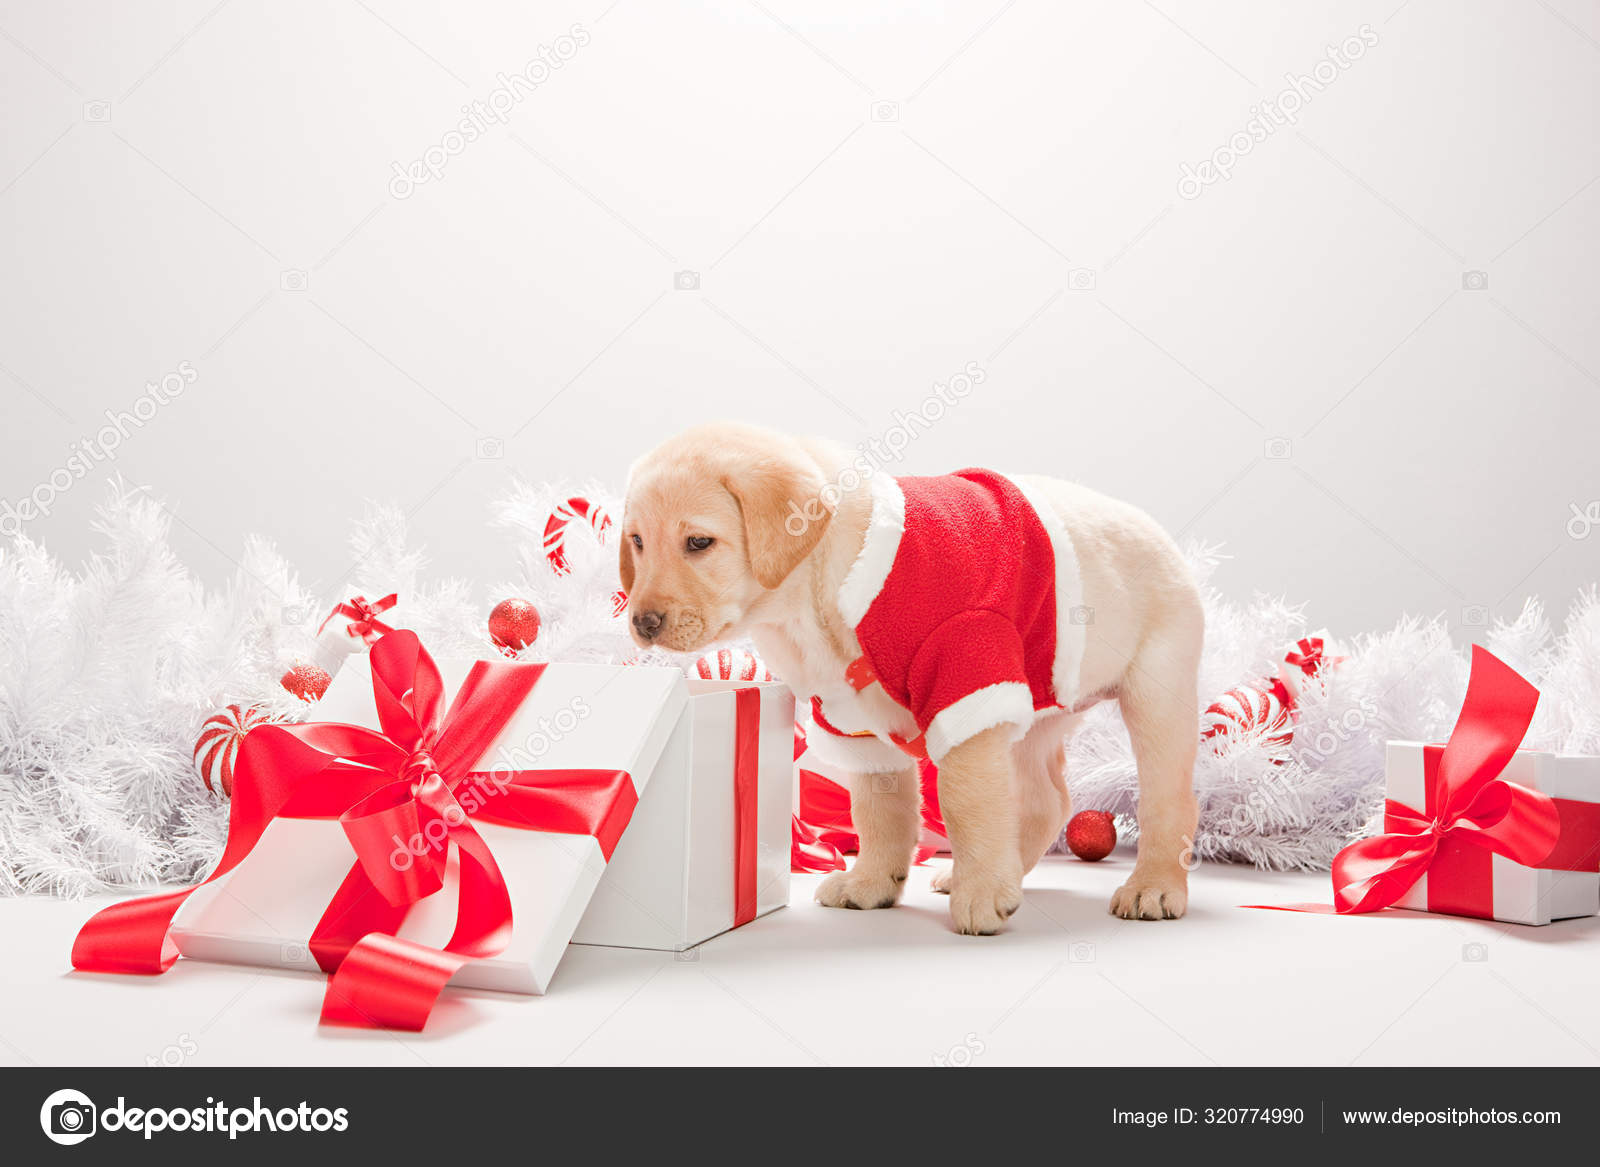 Labrador Puppy Looking Christmas Gift Box Stock Photo C Imagesource 320774990